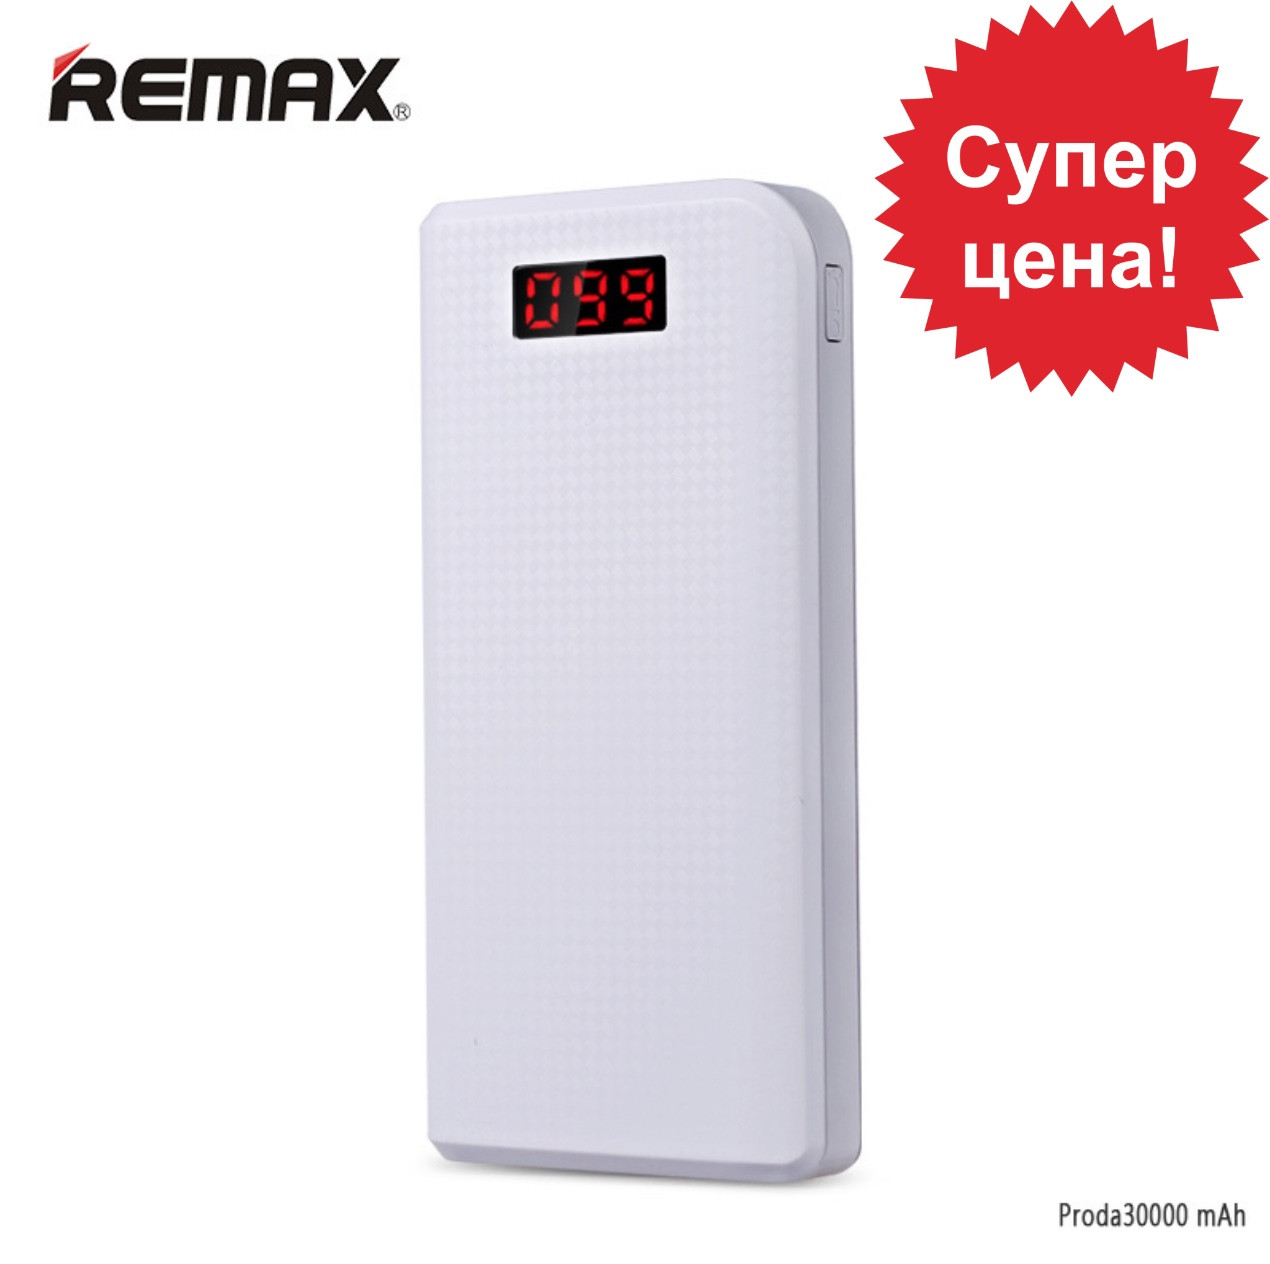 Повербанк Remax Proda 30000 mAh, Power bank, аккумулятор